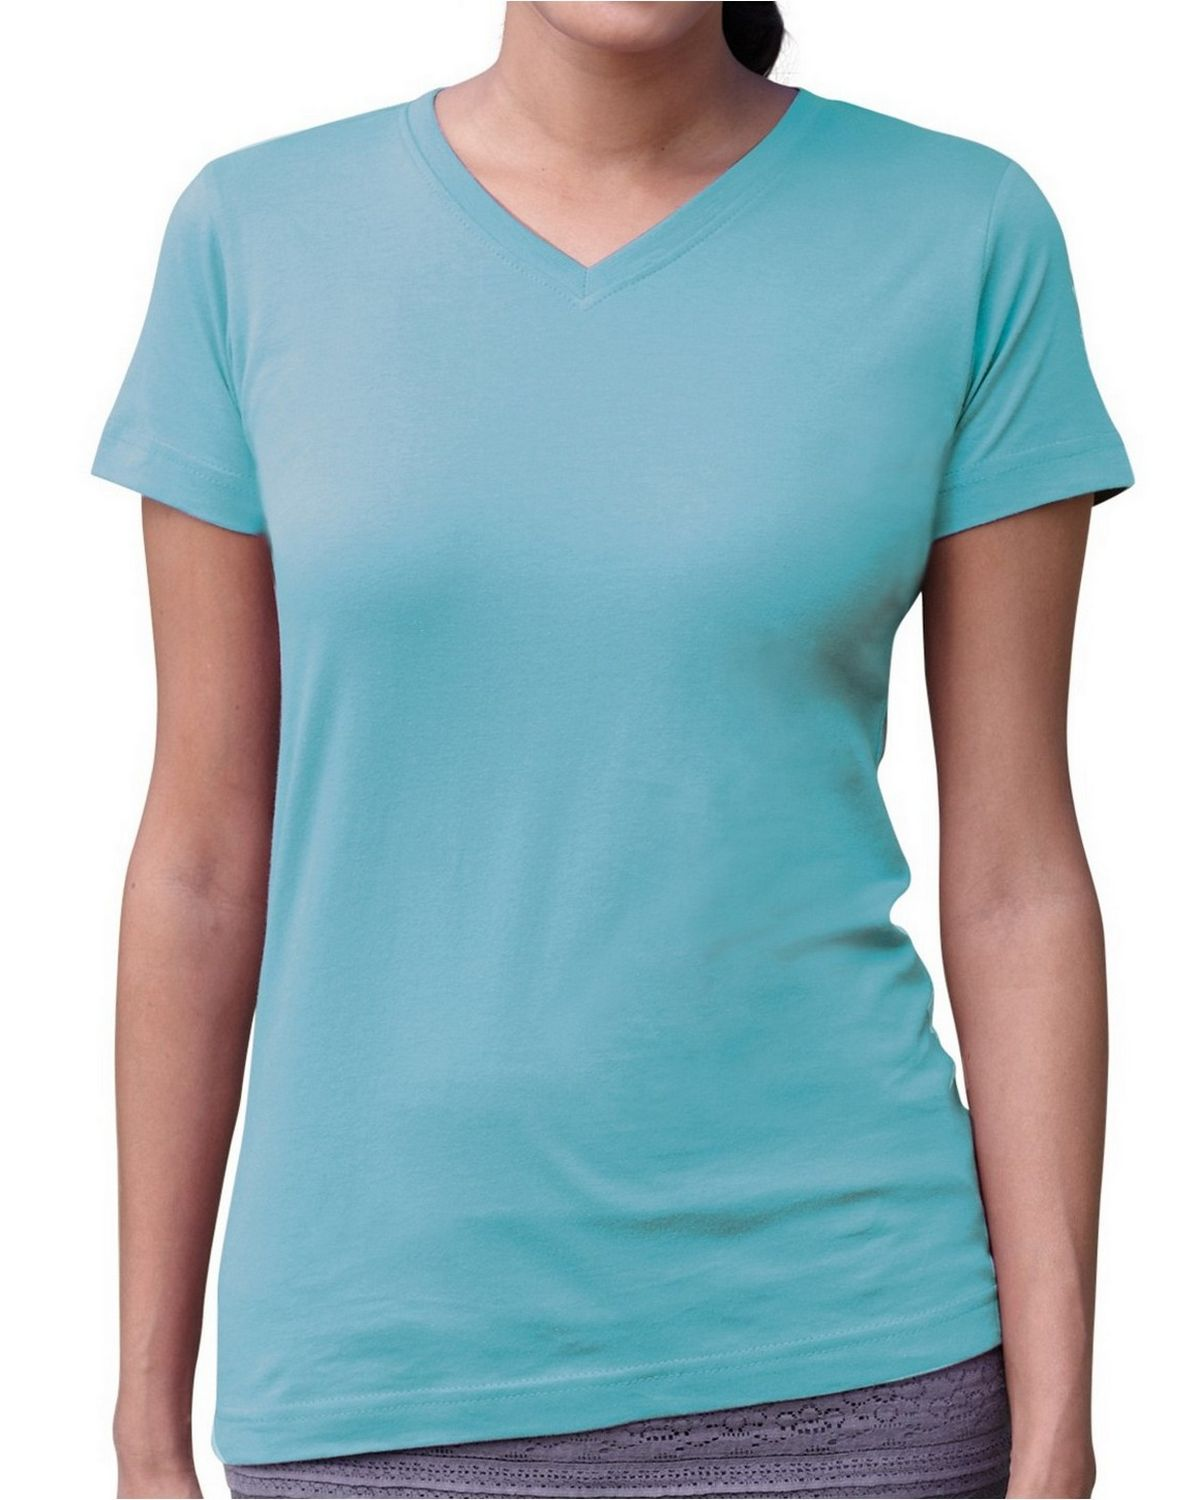 LAT 3507 Fine Jersey Longer Length T-Shirt - Aqua - XL 3507